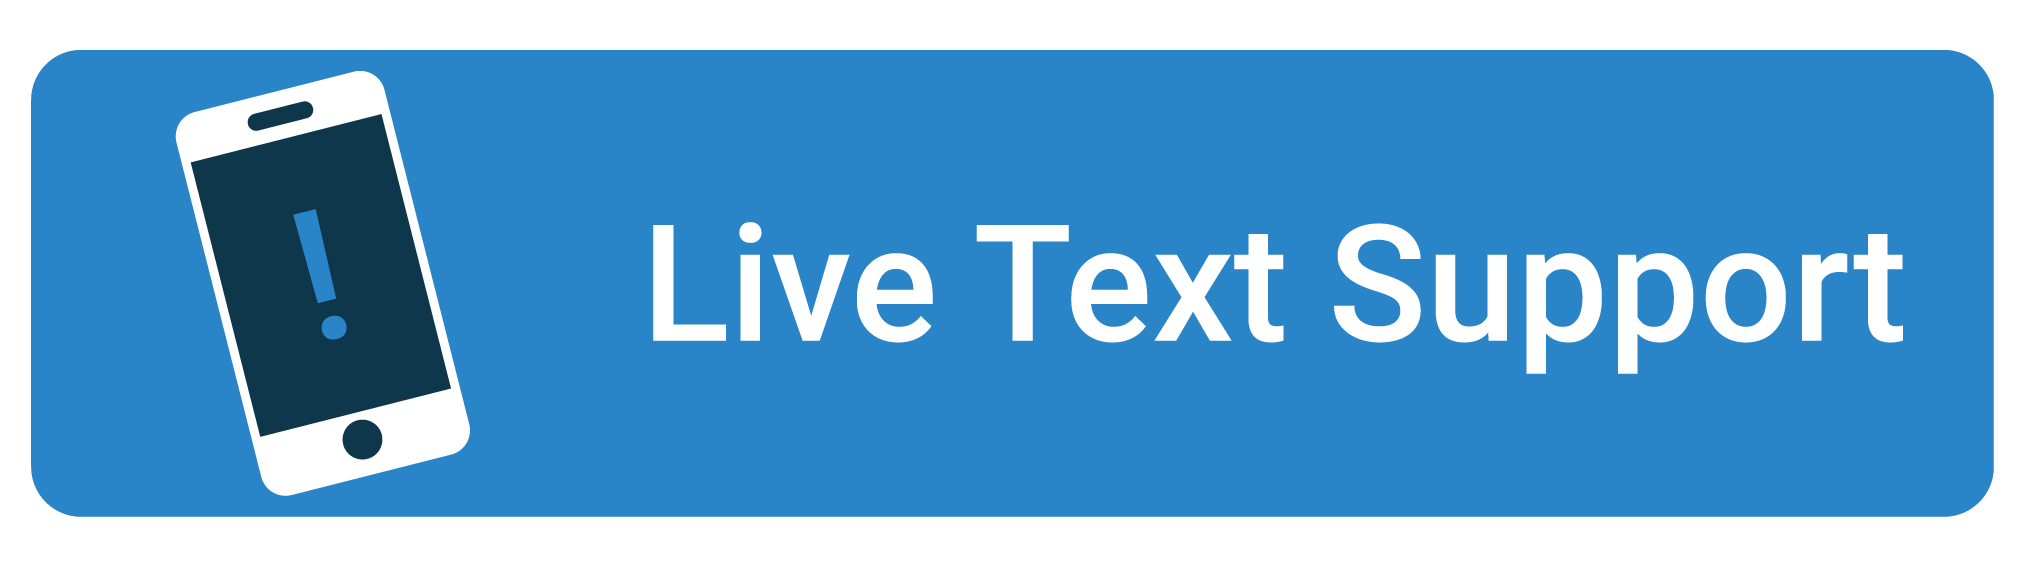 Live Text Support